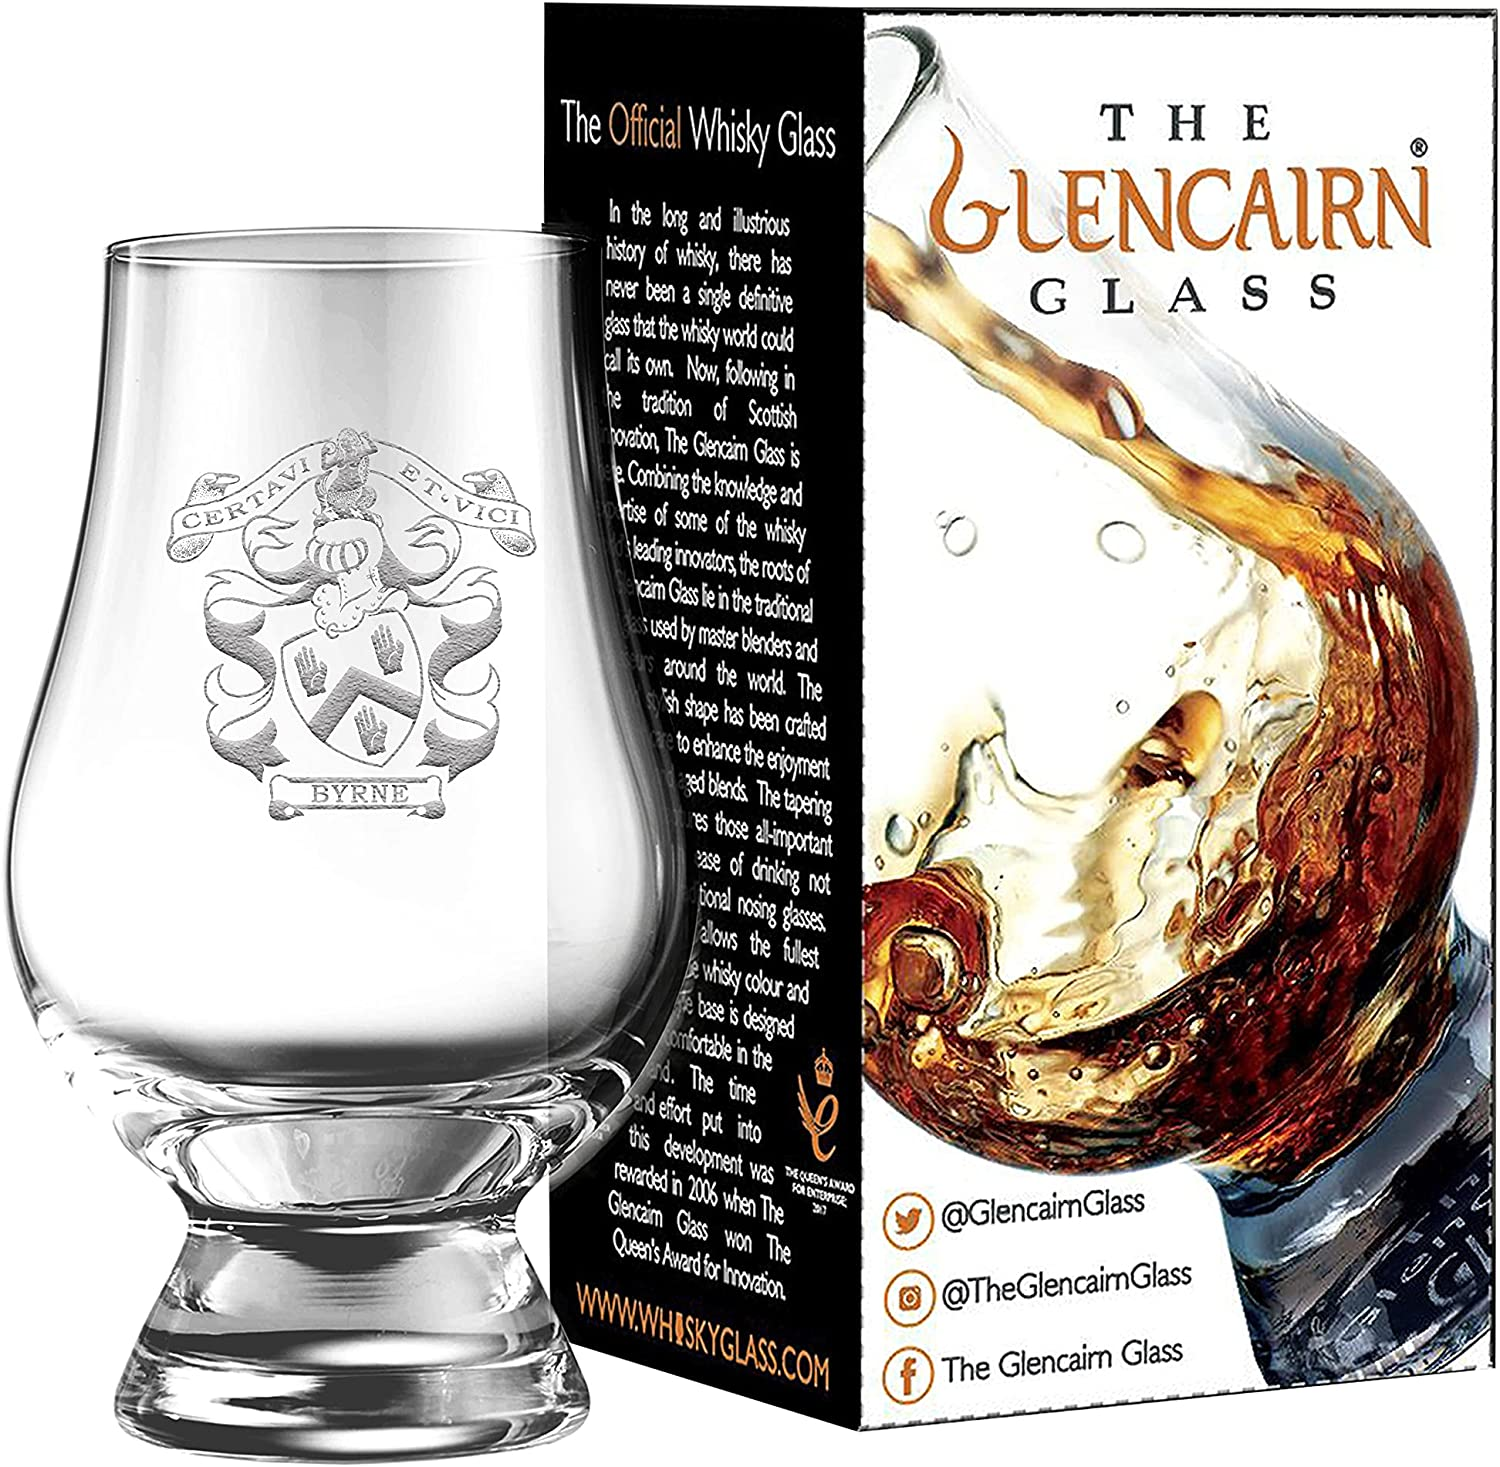 Clan Crest Byrne Challenge the lowest price of Japan Max 48% OFF ☆ Engraved Glencairn Glass Gift Whisky Carton in